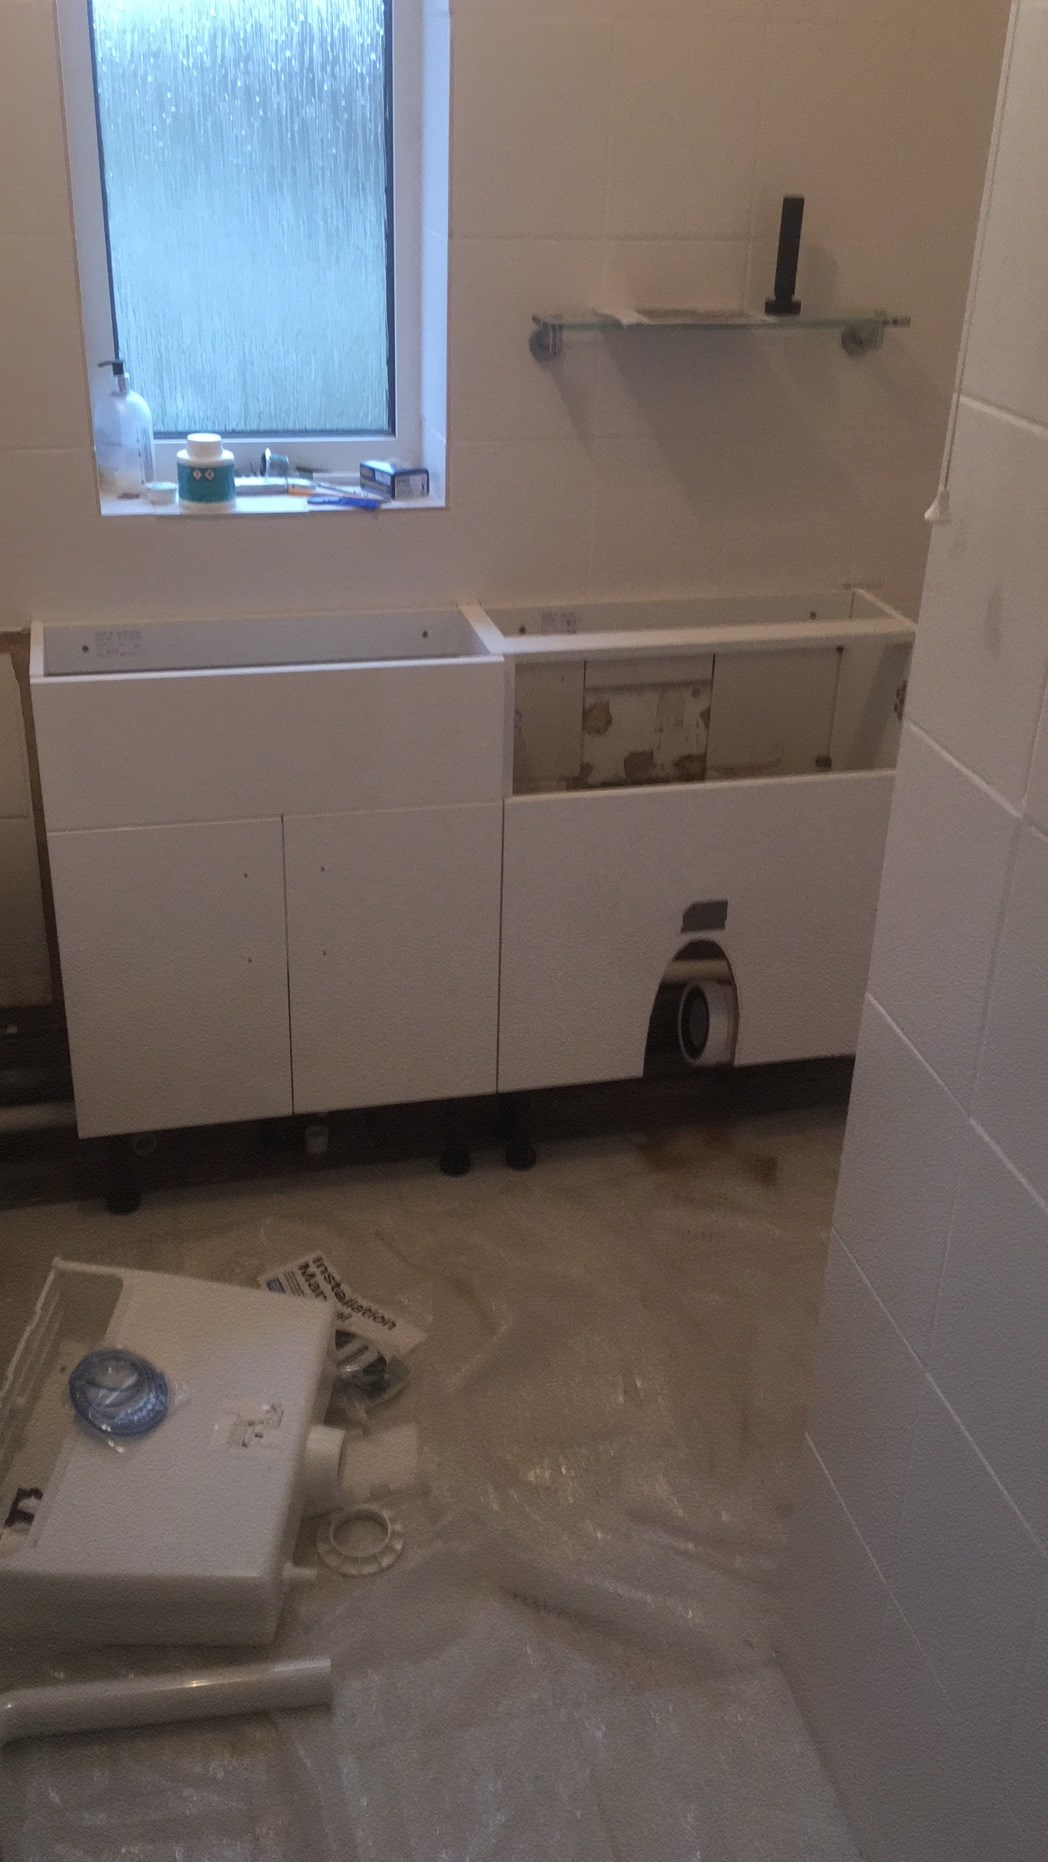 Bathroom sink and toilet partially fitted.